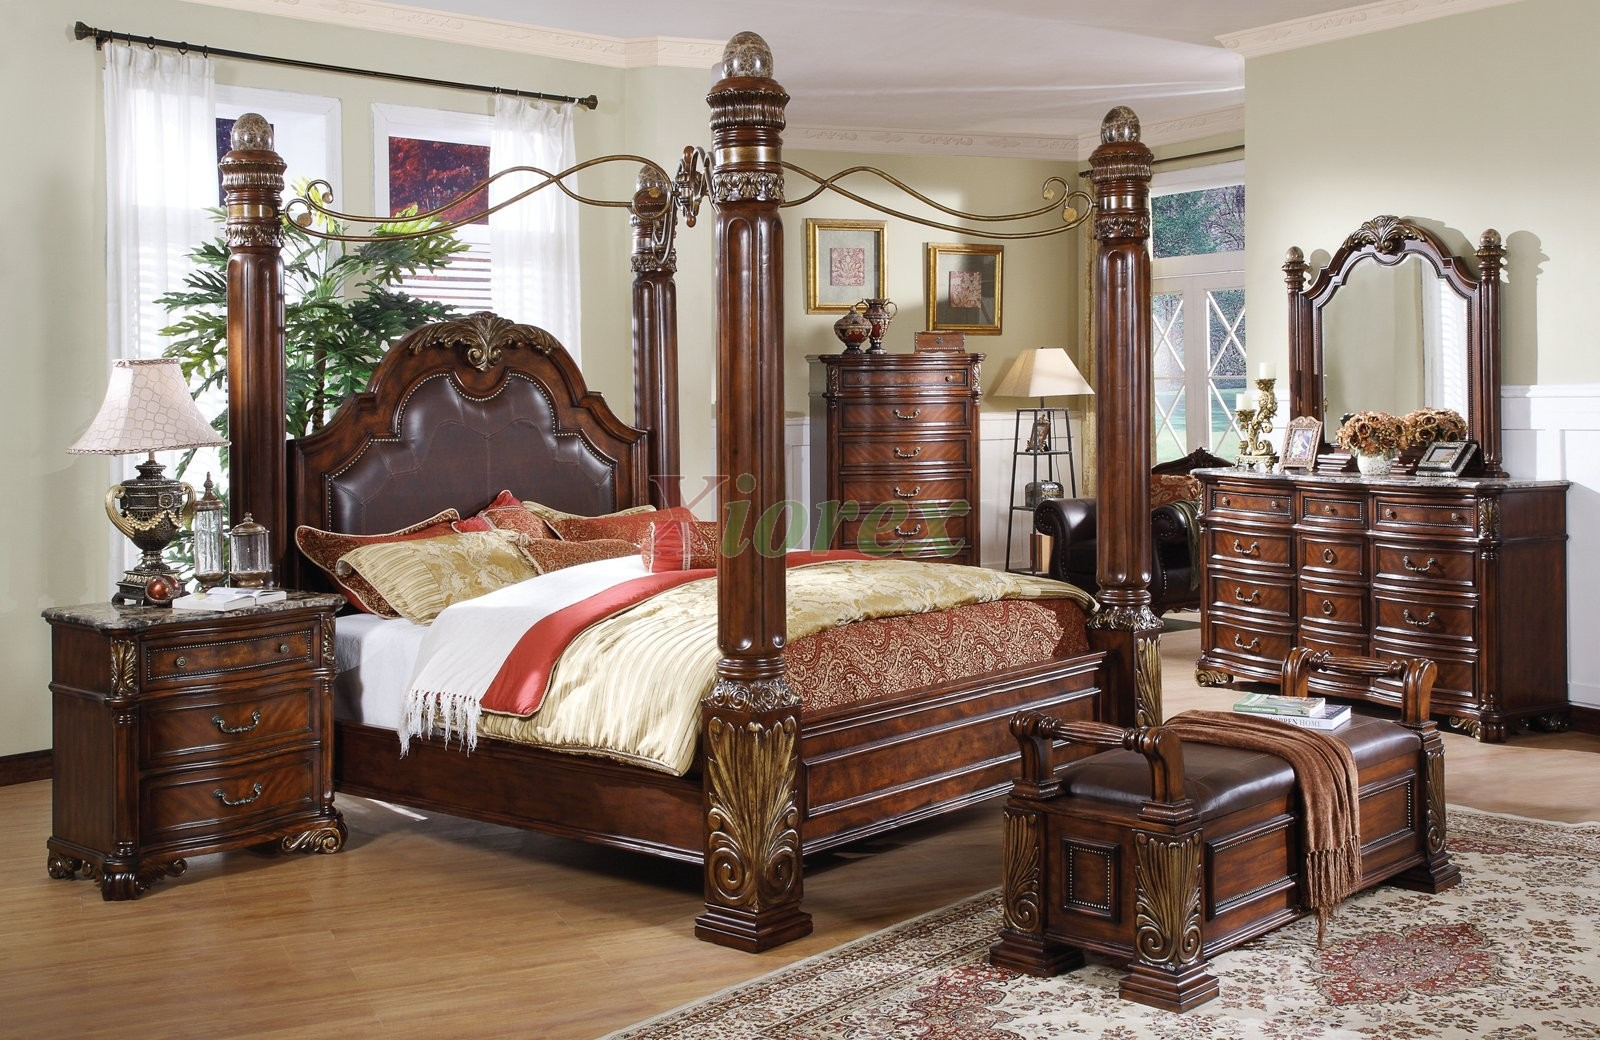 Canopy bed sets bedroom furniture sets w poster canopy for Headboard and dresser set